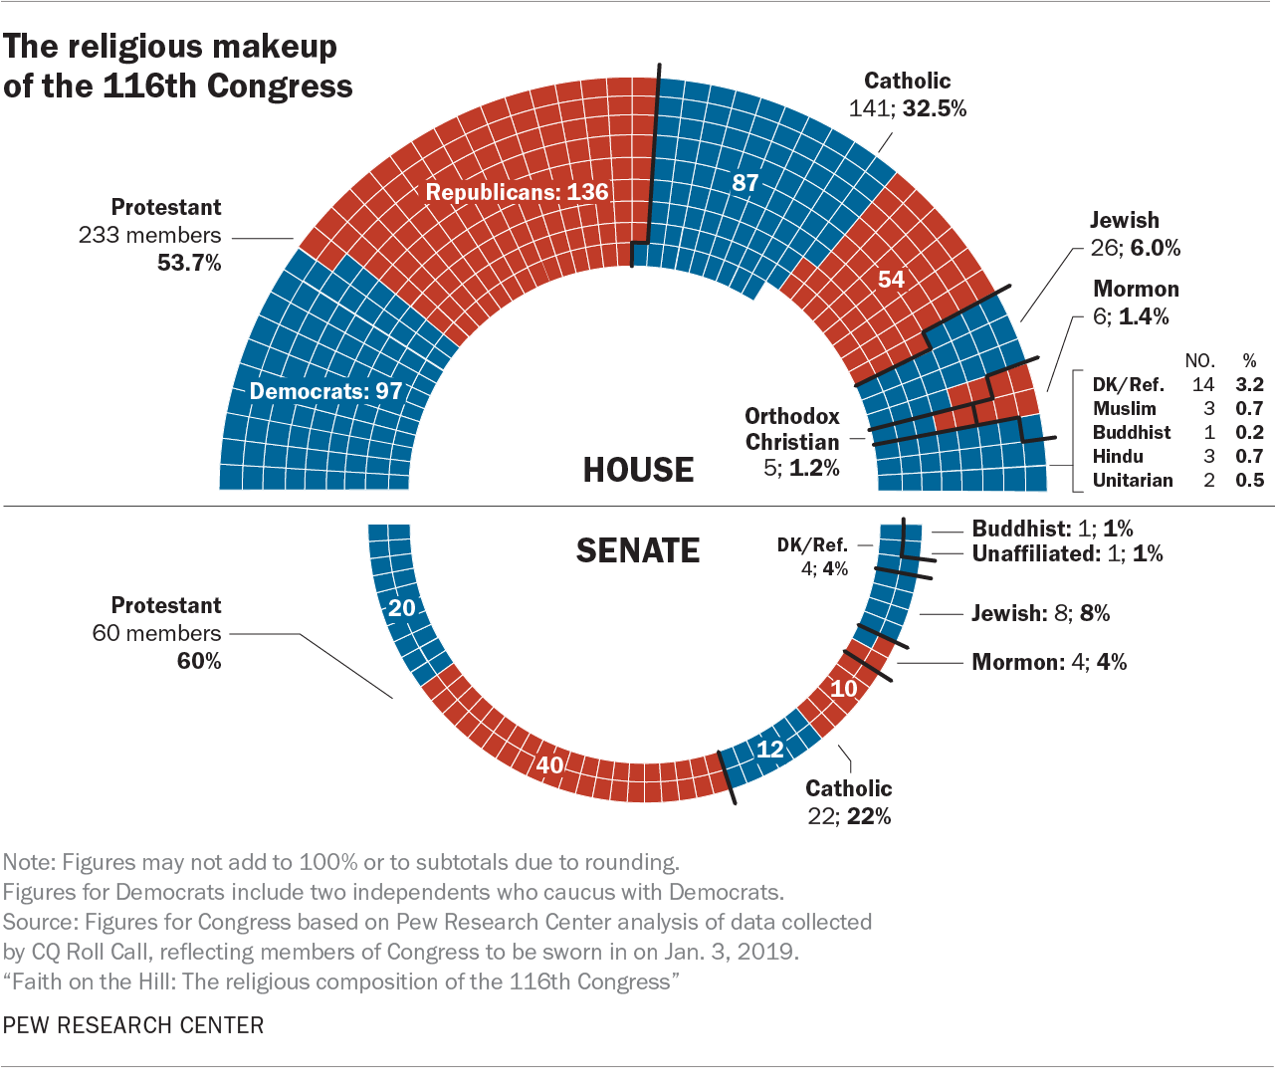 The religious makeup of the 116th Congress